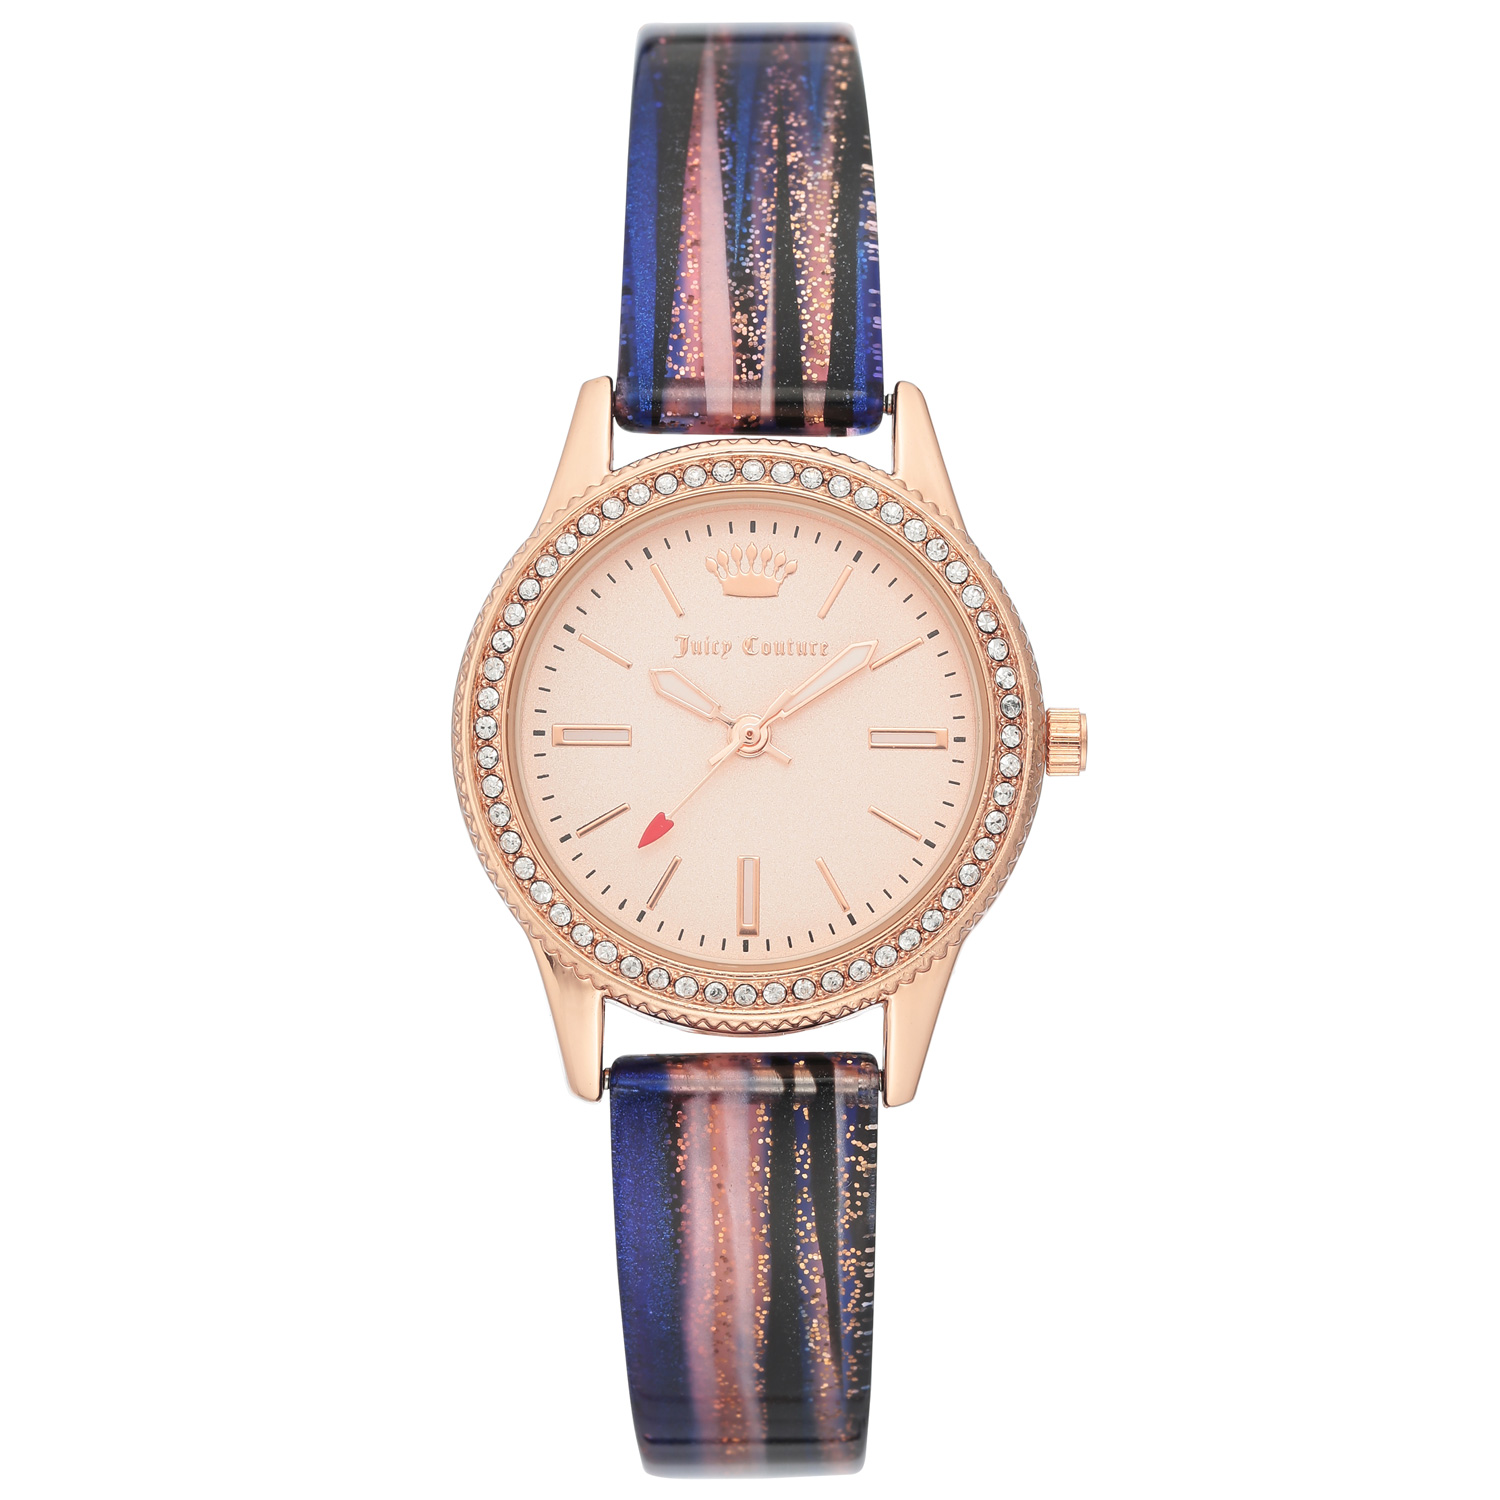 Juicy Couture Watch JC/1114RGMT Rose Gold